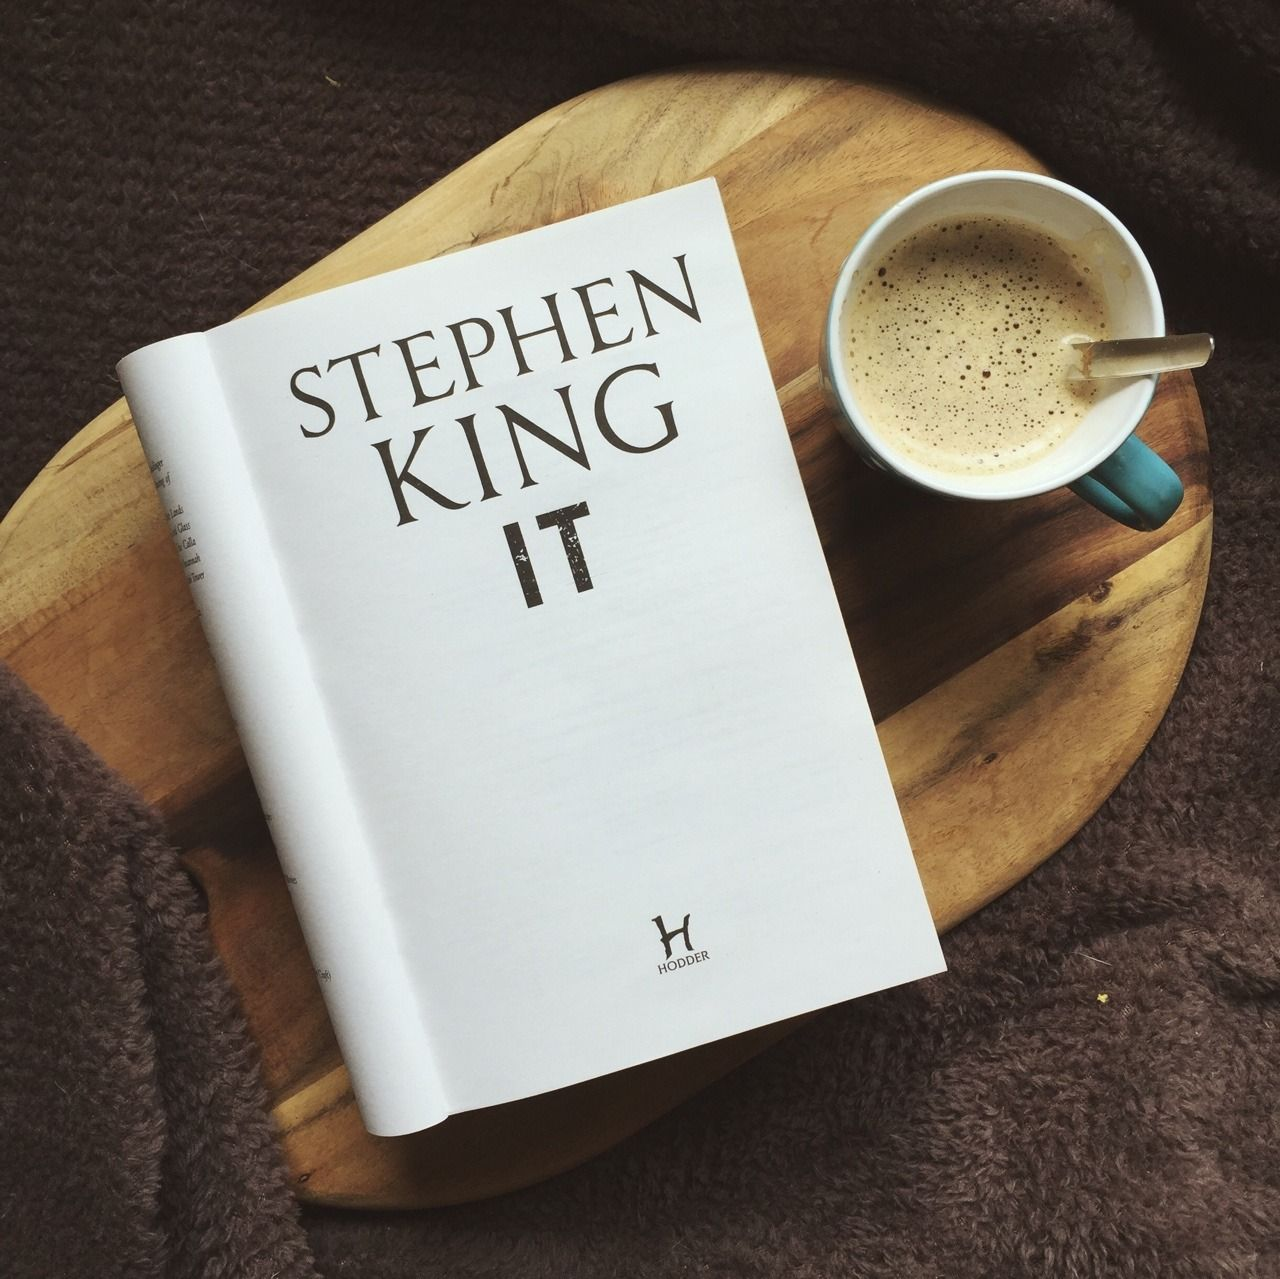 Leer Libros Online Gratis Sin Registrarse Stephen King 39s It Book Tumblr Stephen King Pinterest